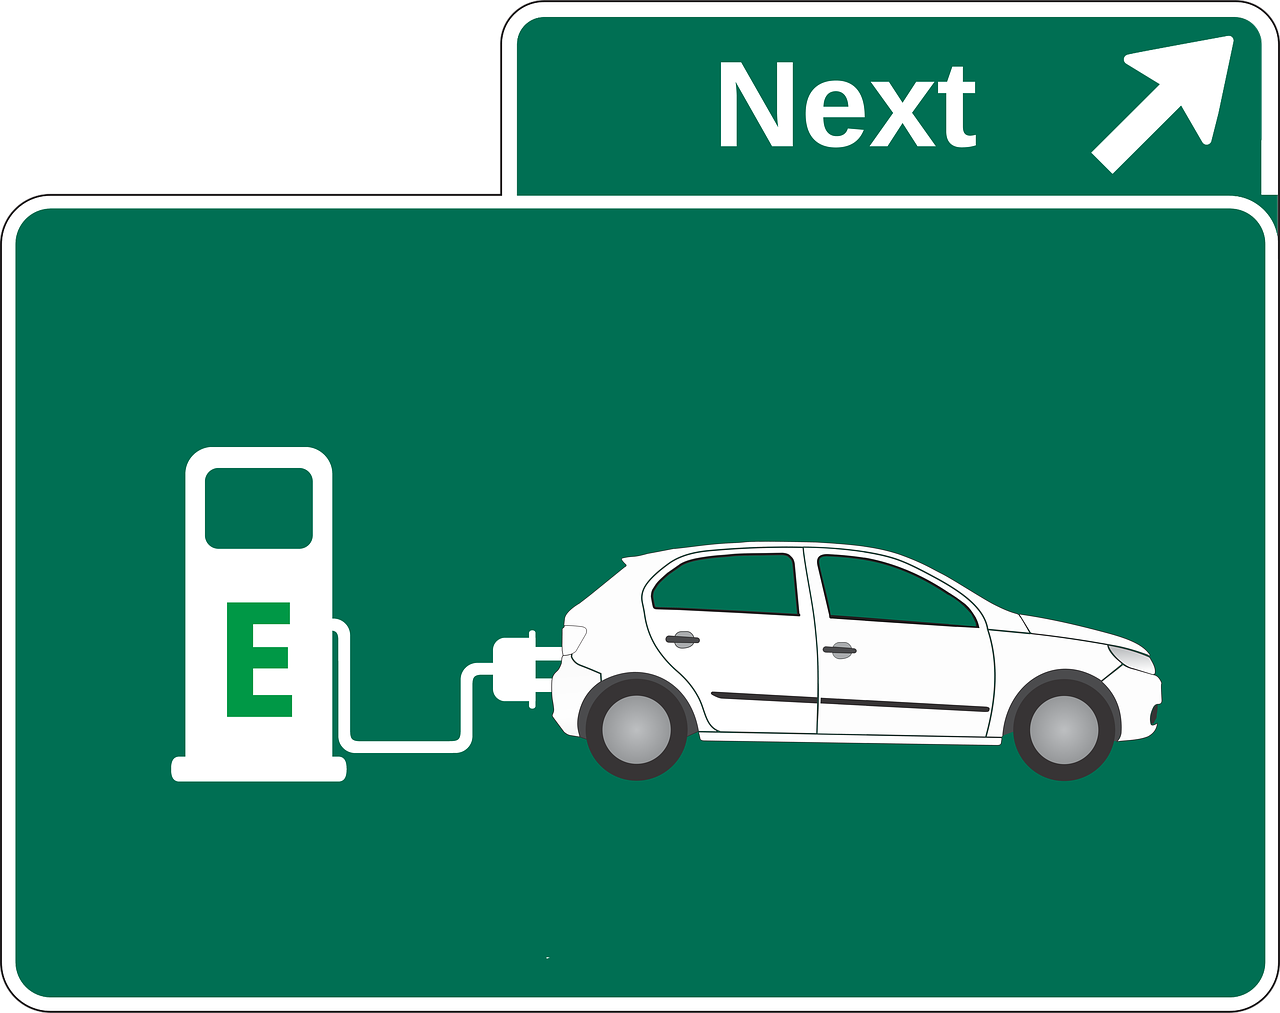 Electric Vehicles Could Become A Lot More Common If Their Range Can Be Tripled With This New Battery Development Image Credit Geralt Pixabay